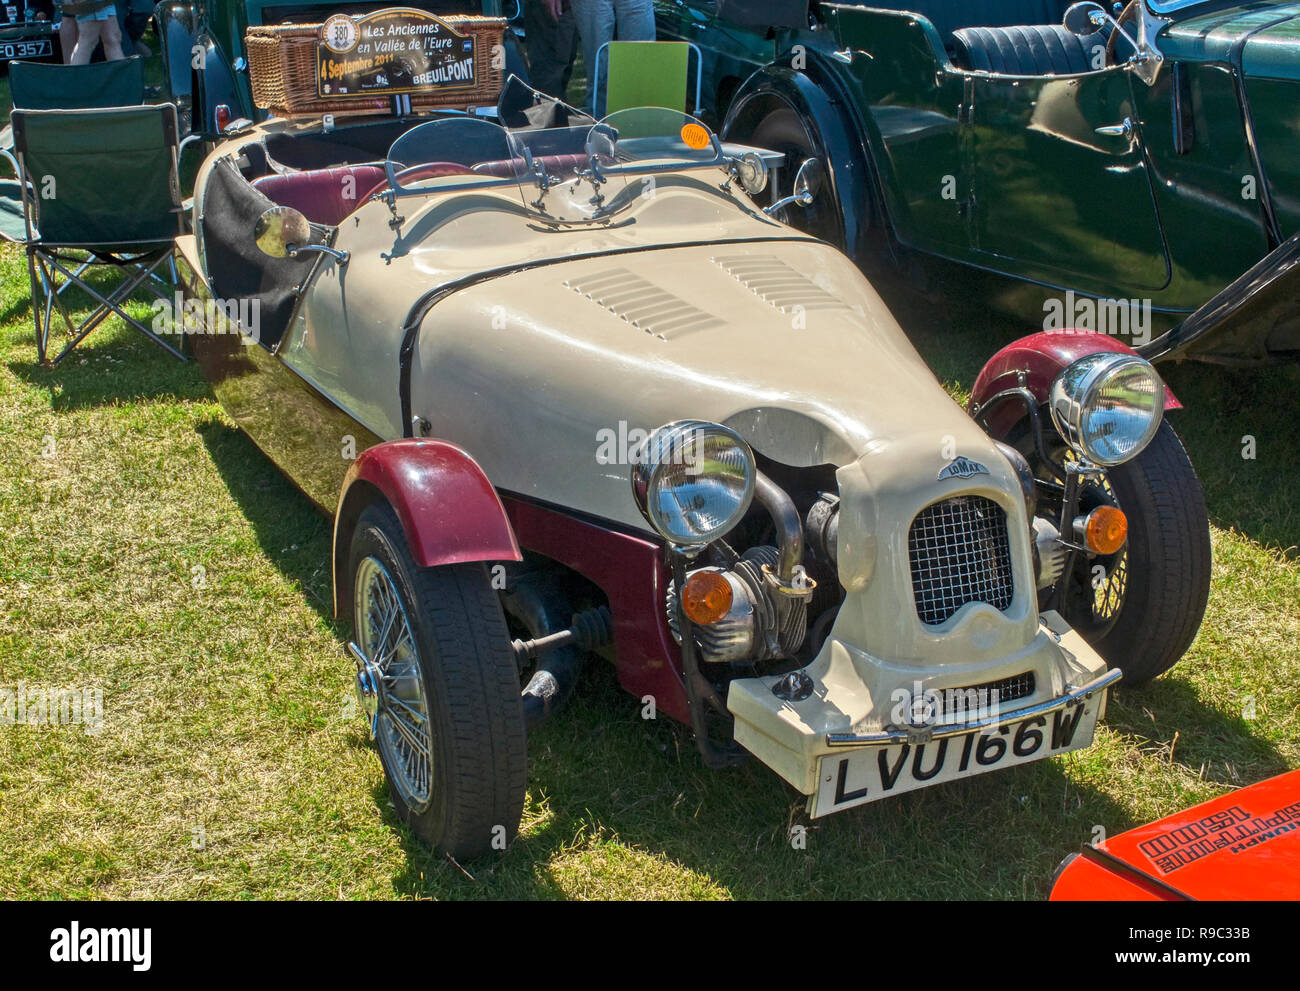 Lomax open top roadster reg.no LVU 166W on display at Old Gaffers Festival, Yarmouth, Isle of Wight - Stock Image